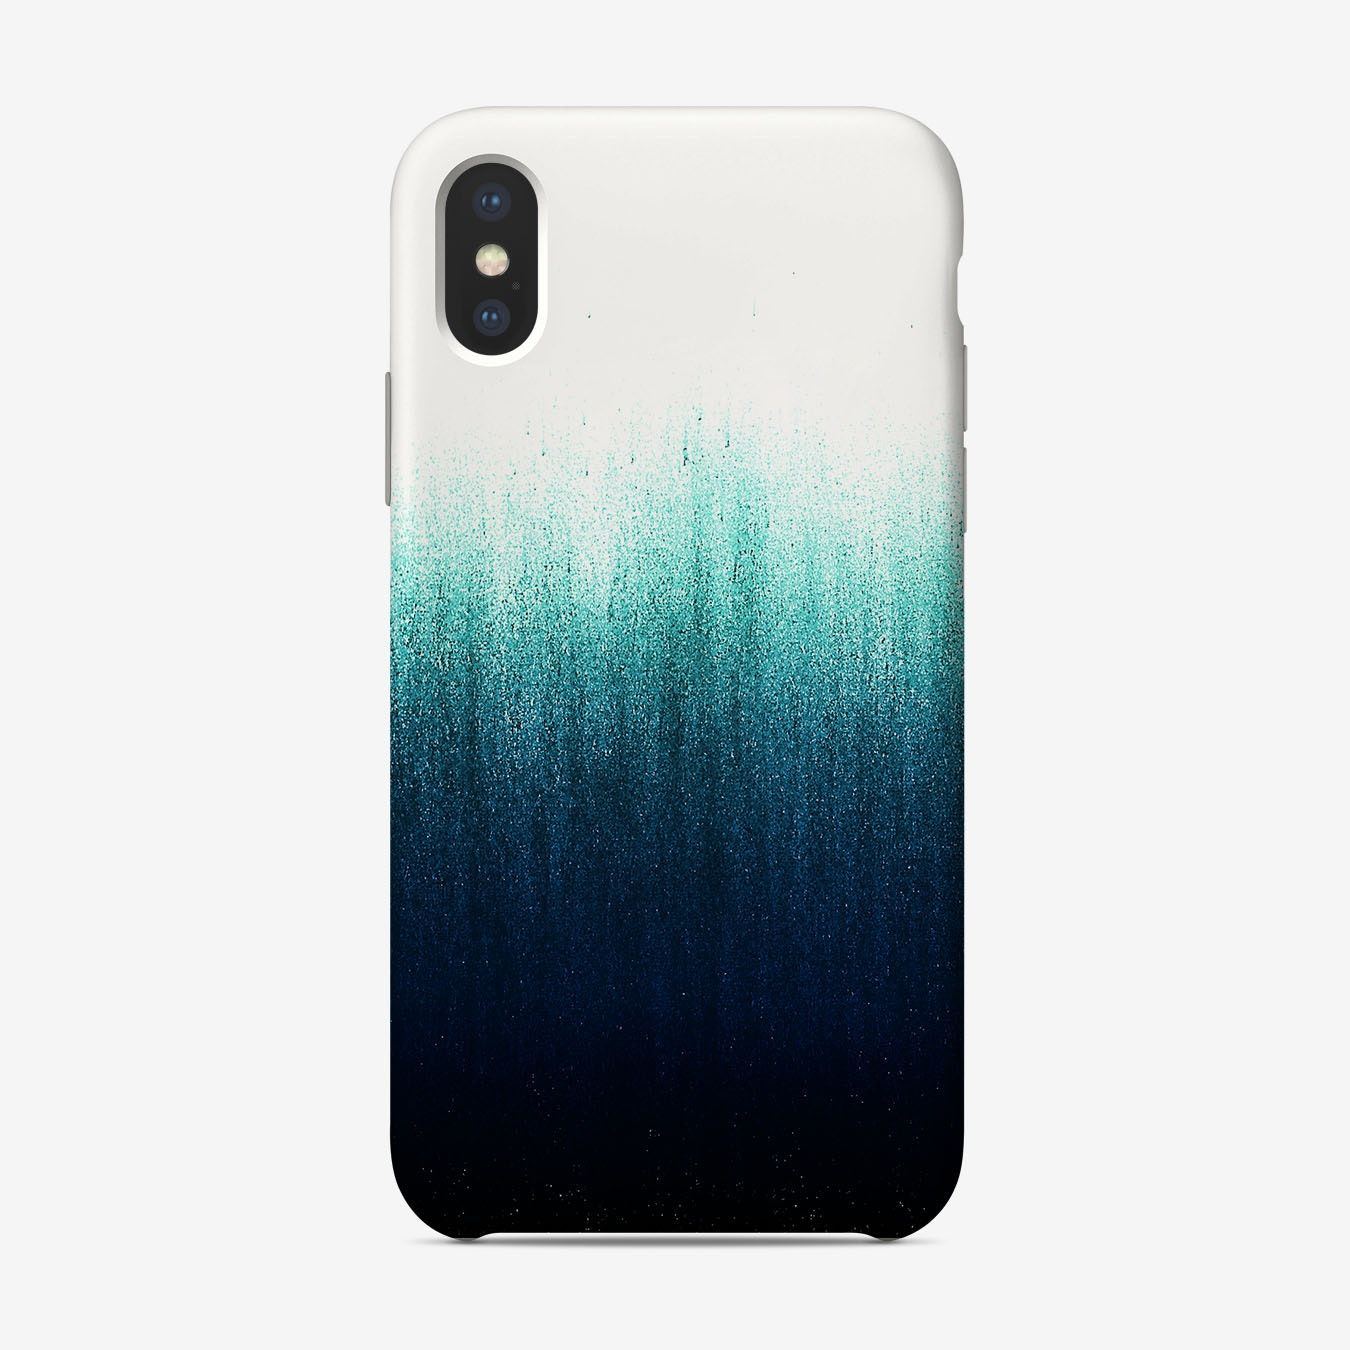 Teal Ombre Phone Case In 2020 Phone Case Diy Paint Diy Phone Case Design Diy Phone Case